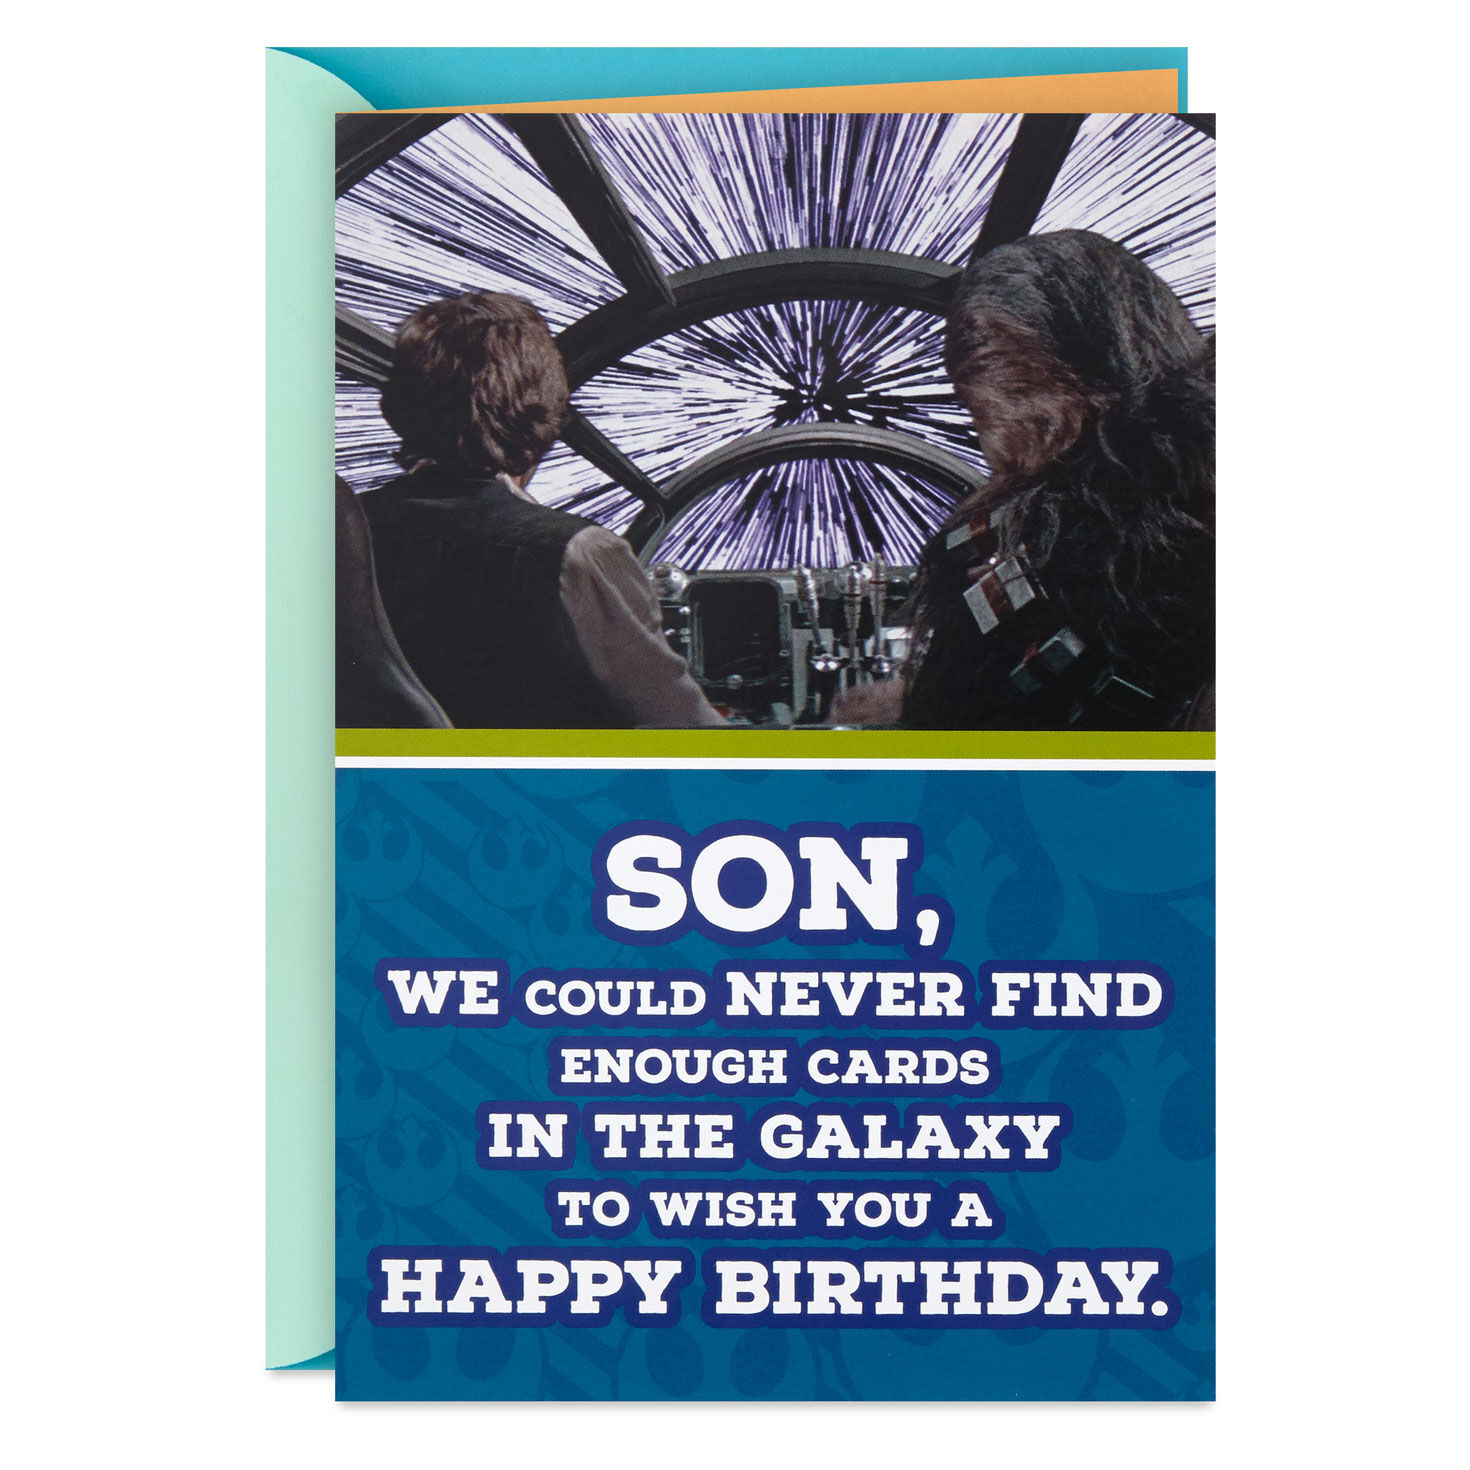 Star Wars Han Solo And Chewbacca Birthday Card For Son With Mini Cards Greeting Cards Hallmark